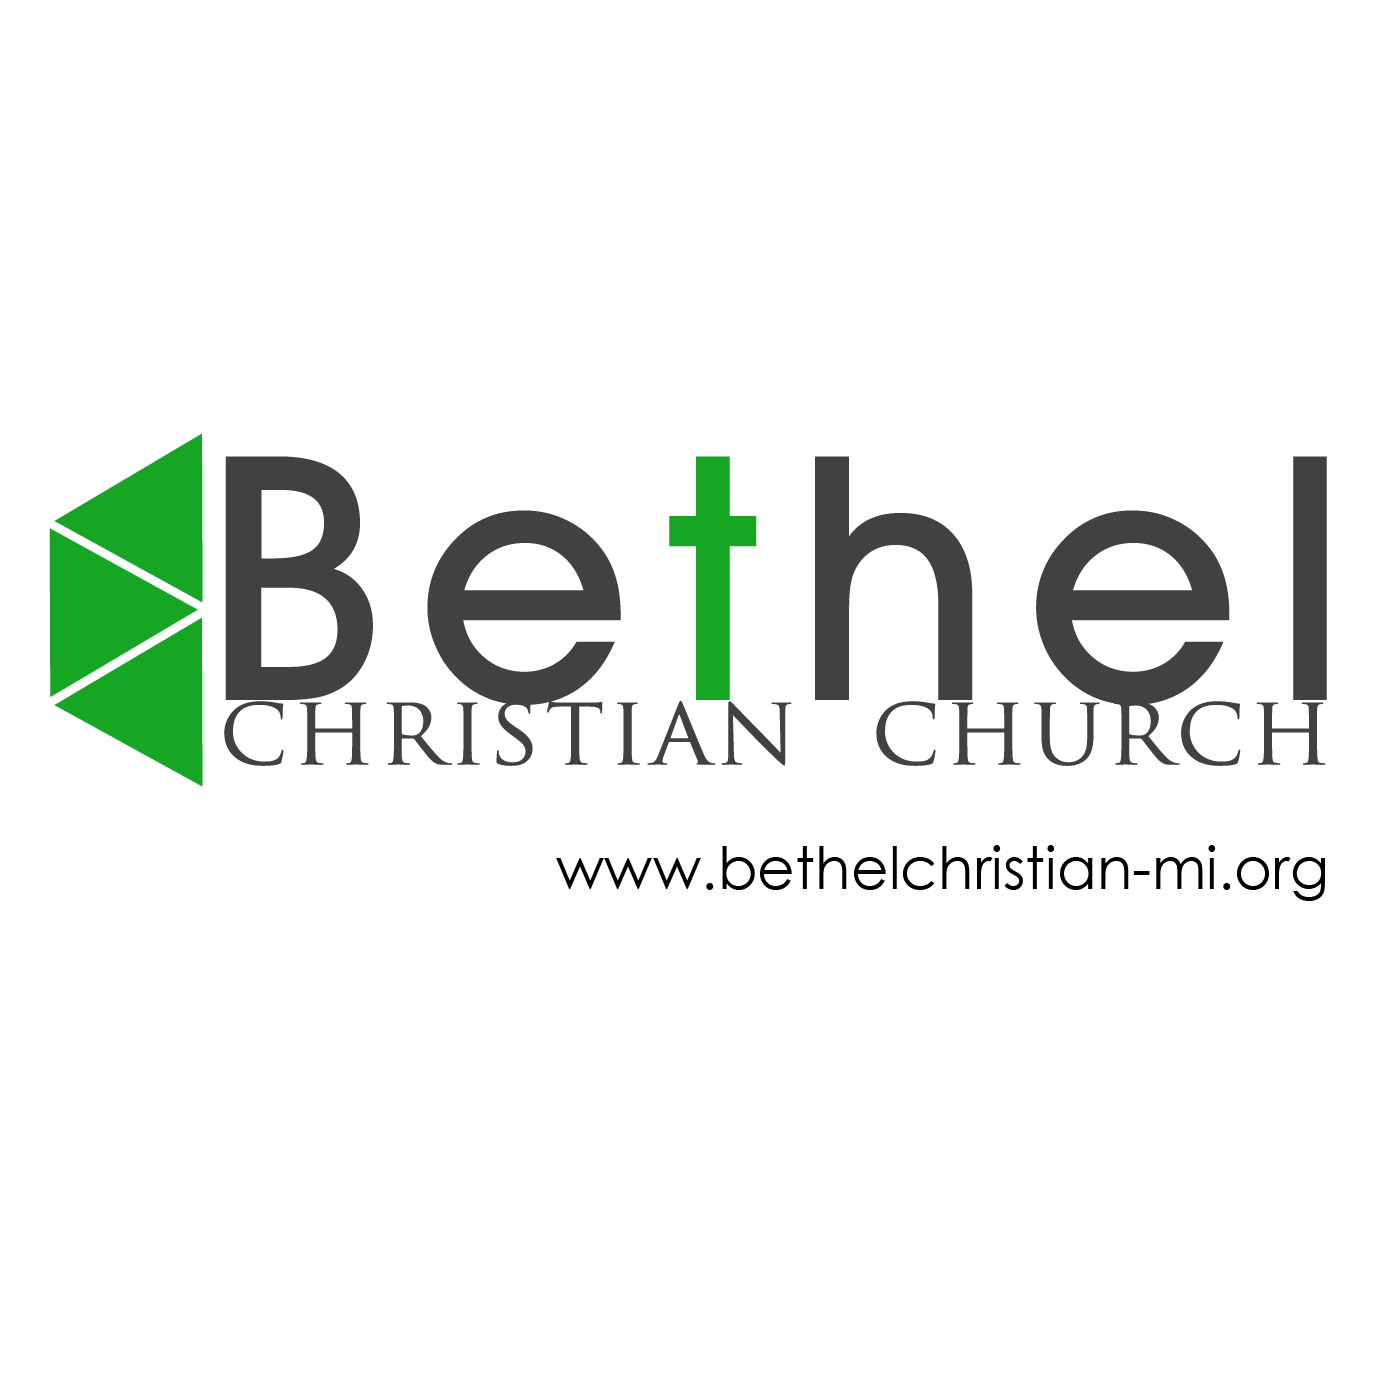 Bethel Christian Church - Warren MI